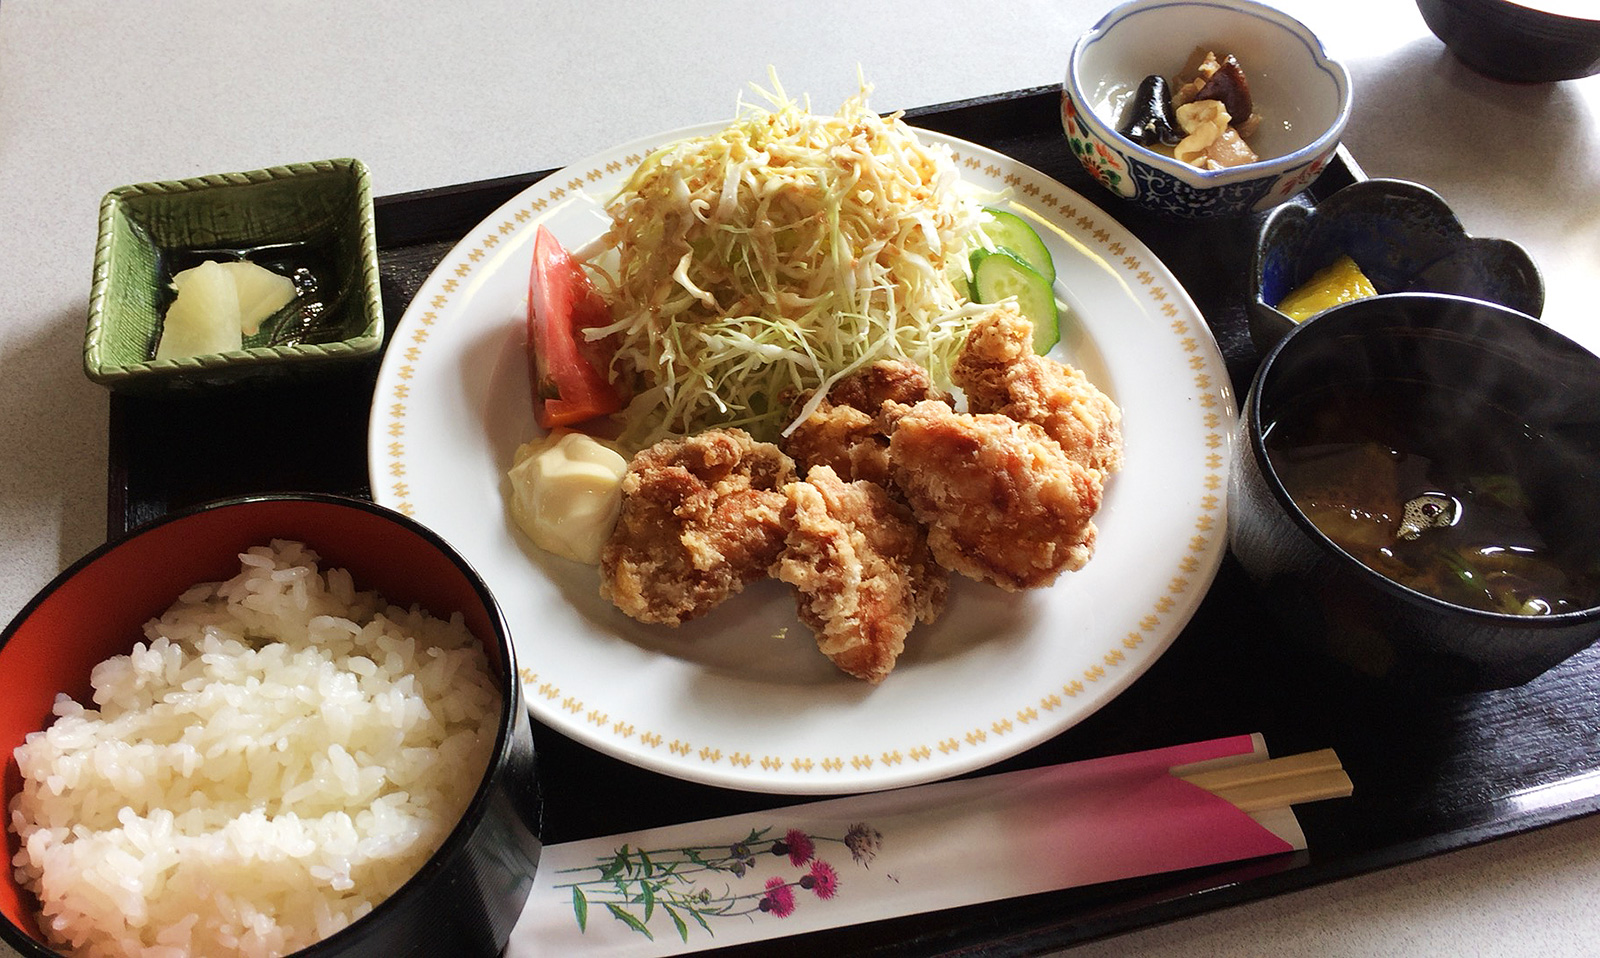 「Cafe Rout66」の唐揚げランチ @大野木